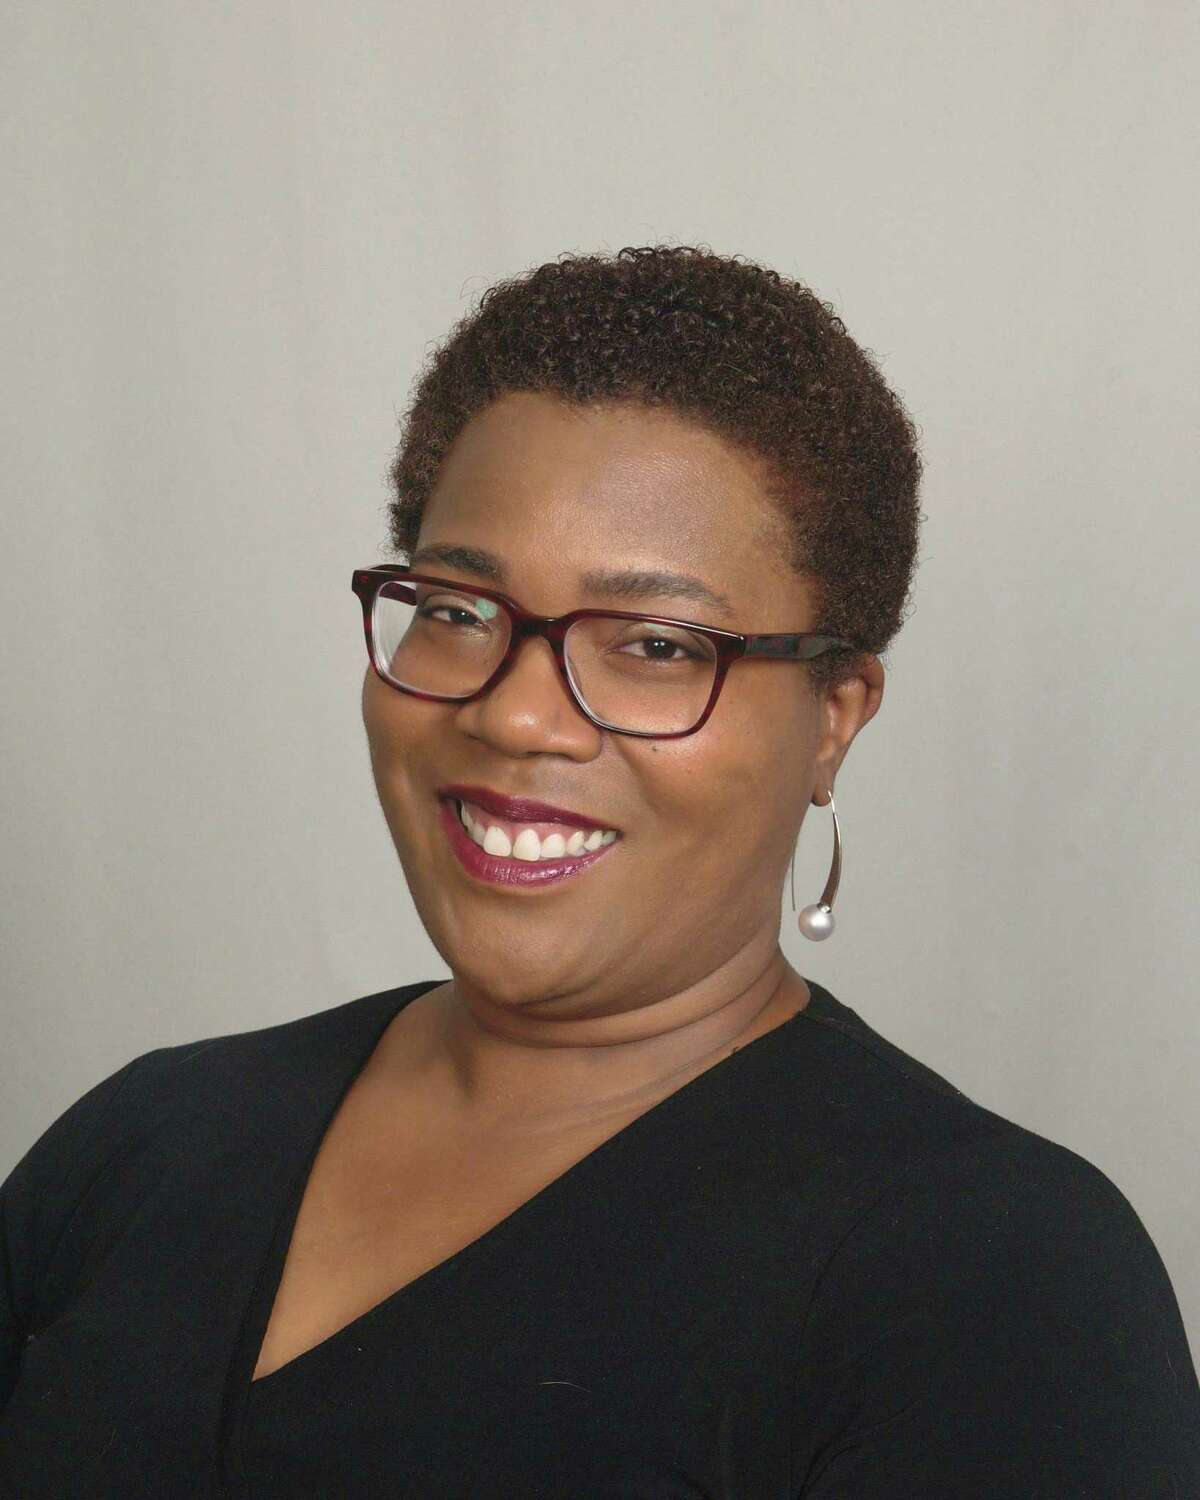 Natalie Tindall, chair of the Lamar University Department of Communication and Media and associate professor, is one of four new trustees named to serve the Institute of Public Relations.